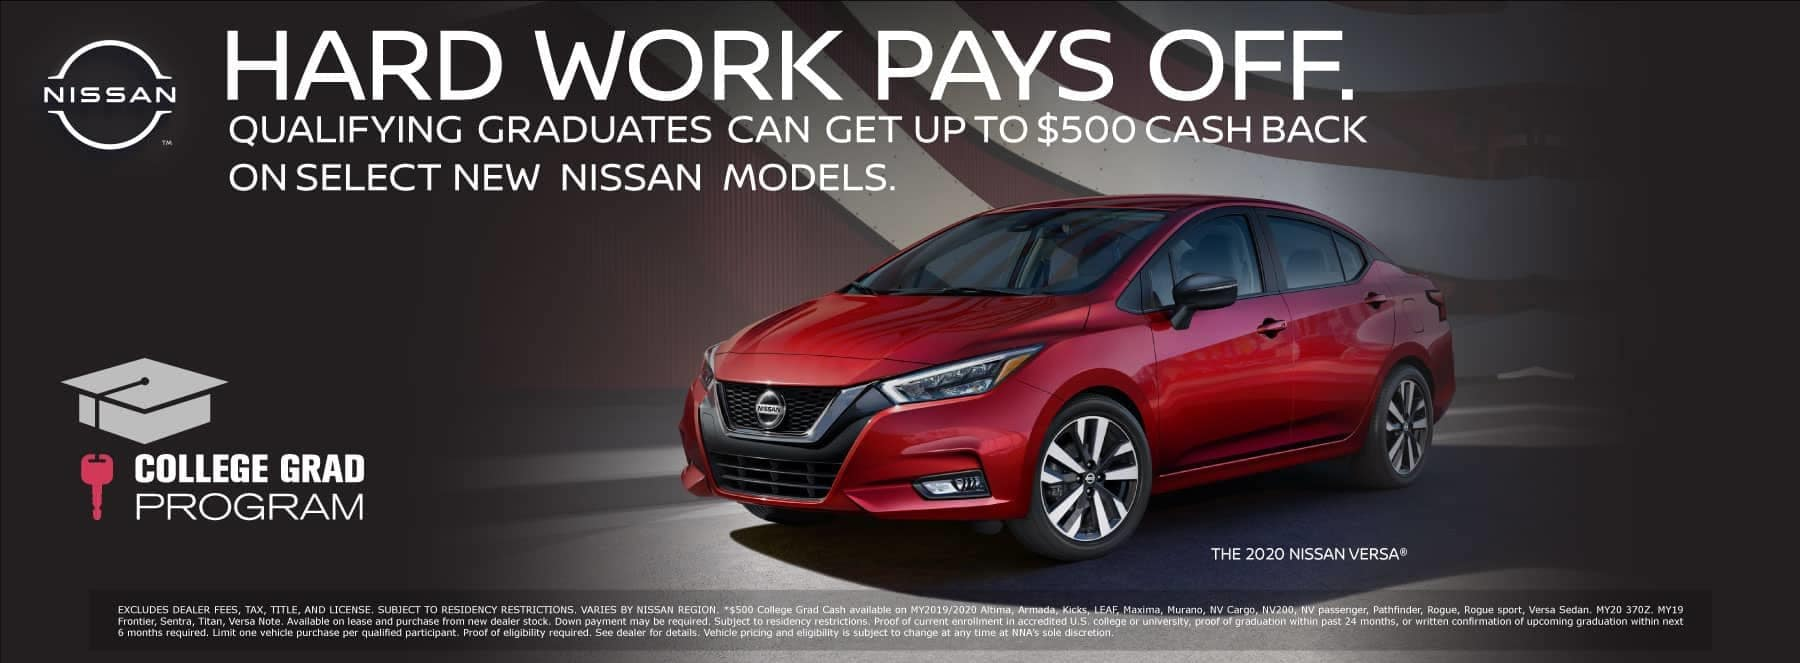 Nissan_College_Grad_Program-DI